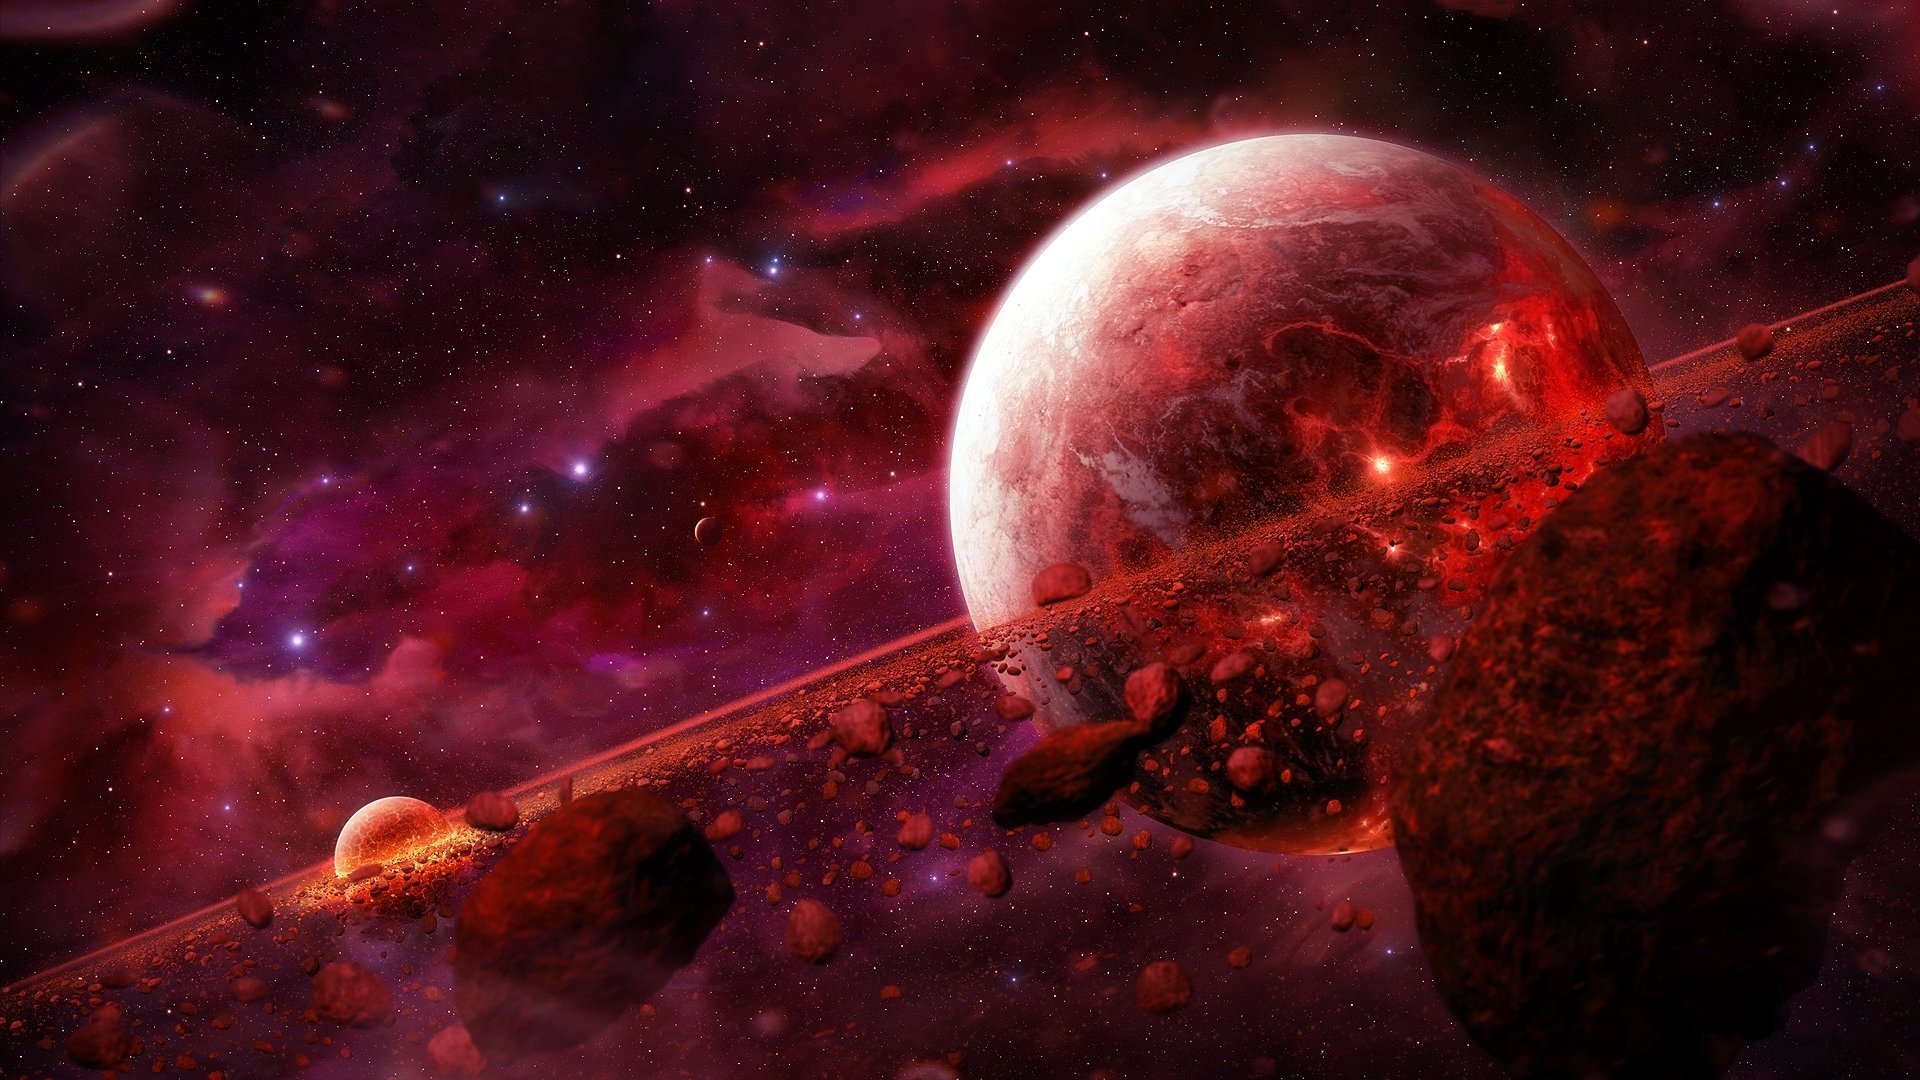 Planet and space rocks fondo de pantalla hd fondo de - Red space wallpaper 4k ...